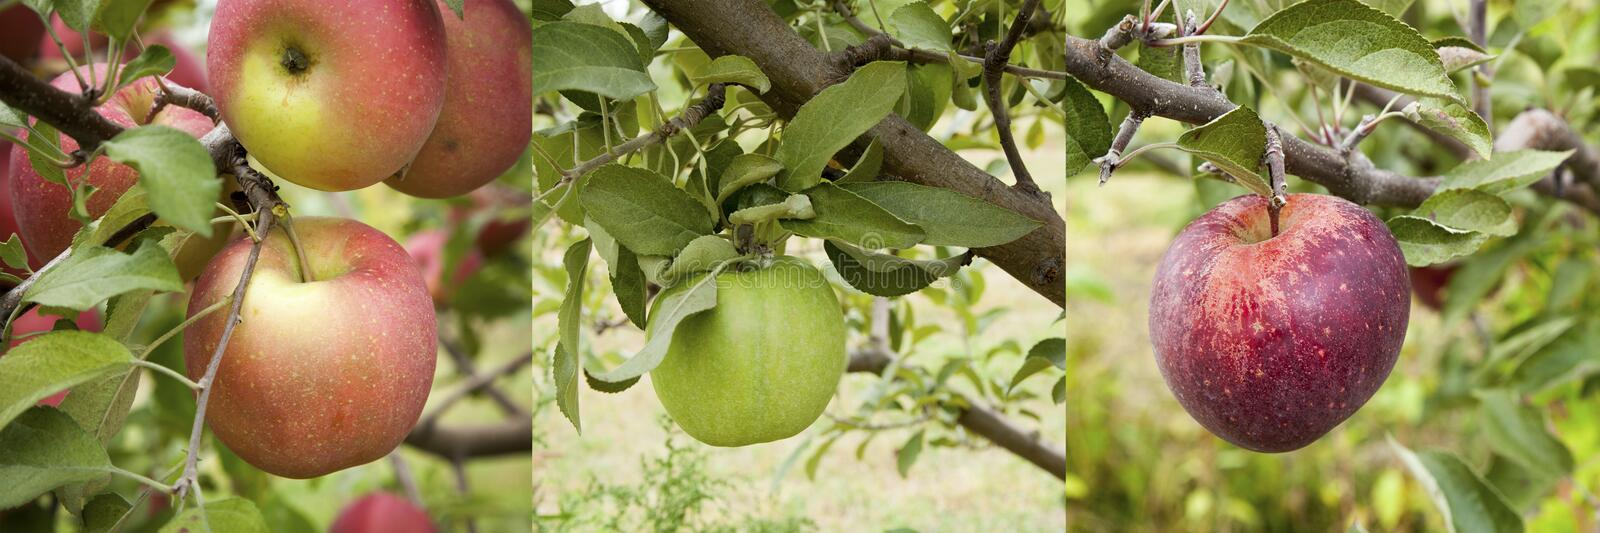 Apple Assortment Panorama royalty free stock images